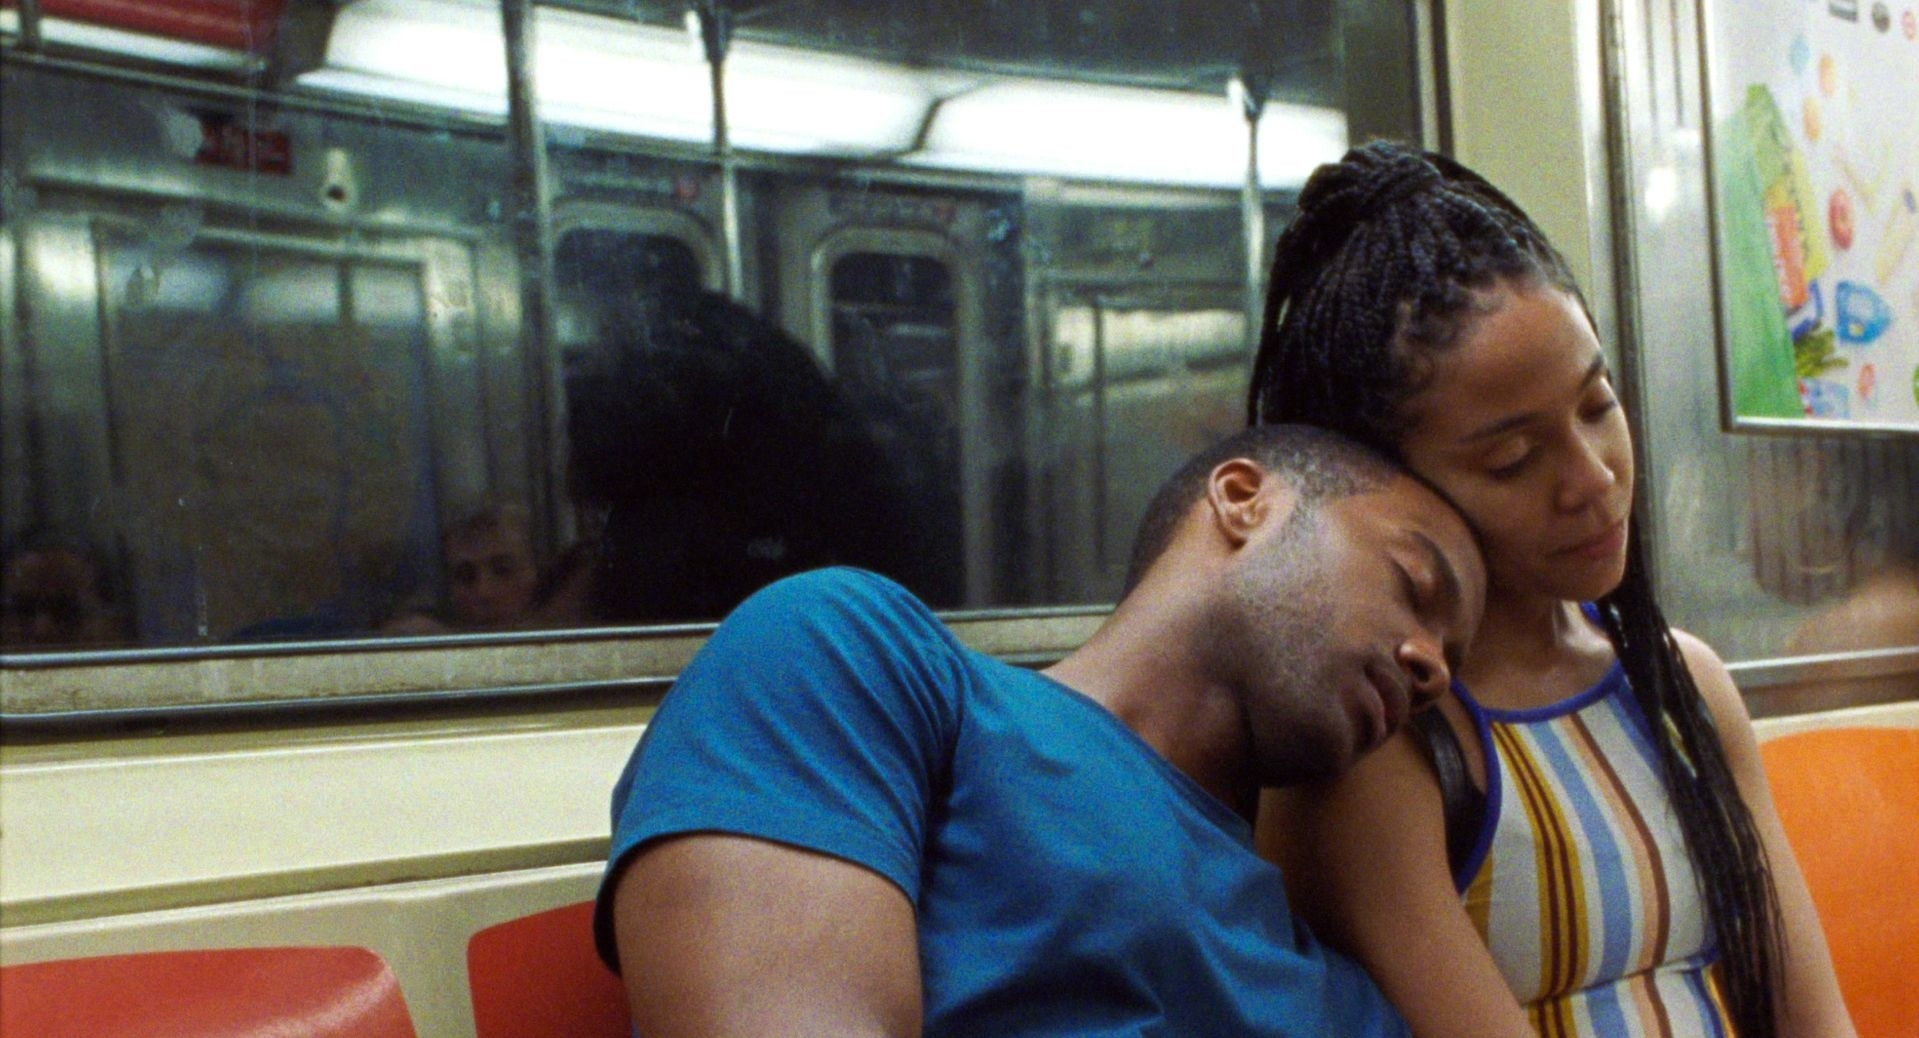 A man and woman lean on each other as they take the subway home